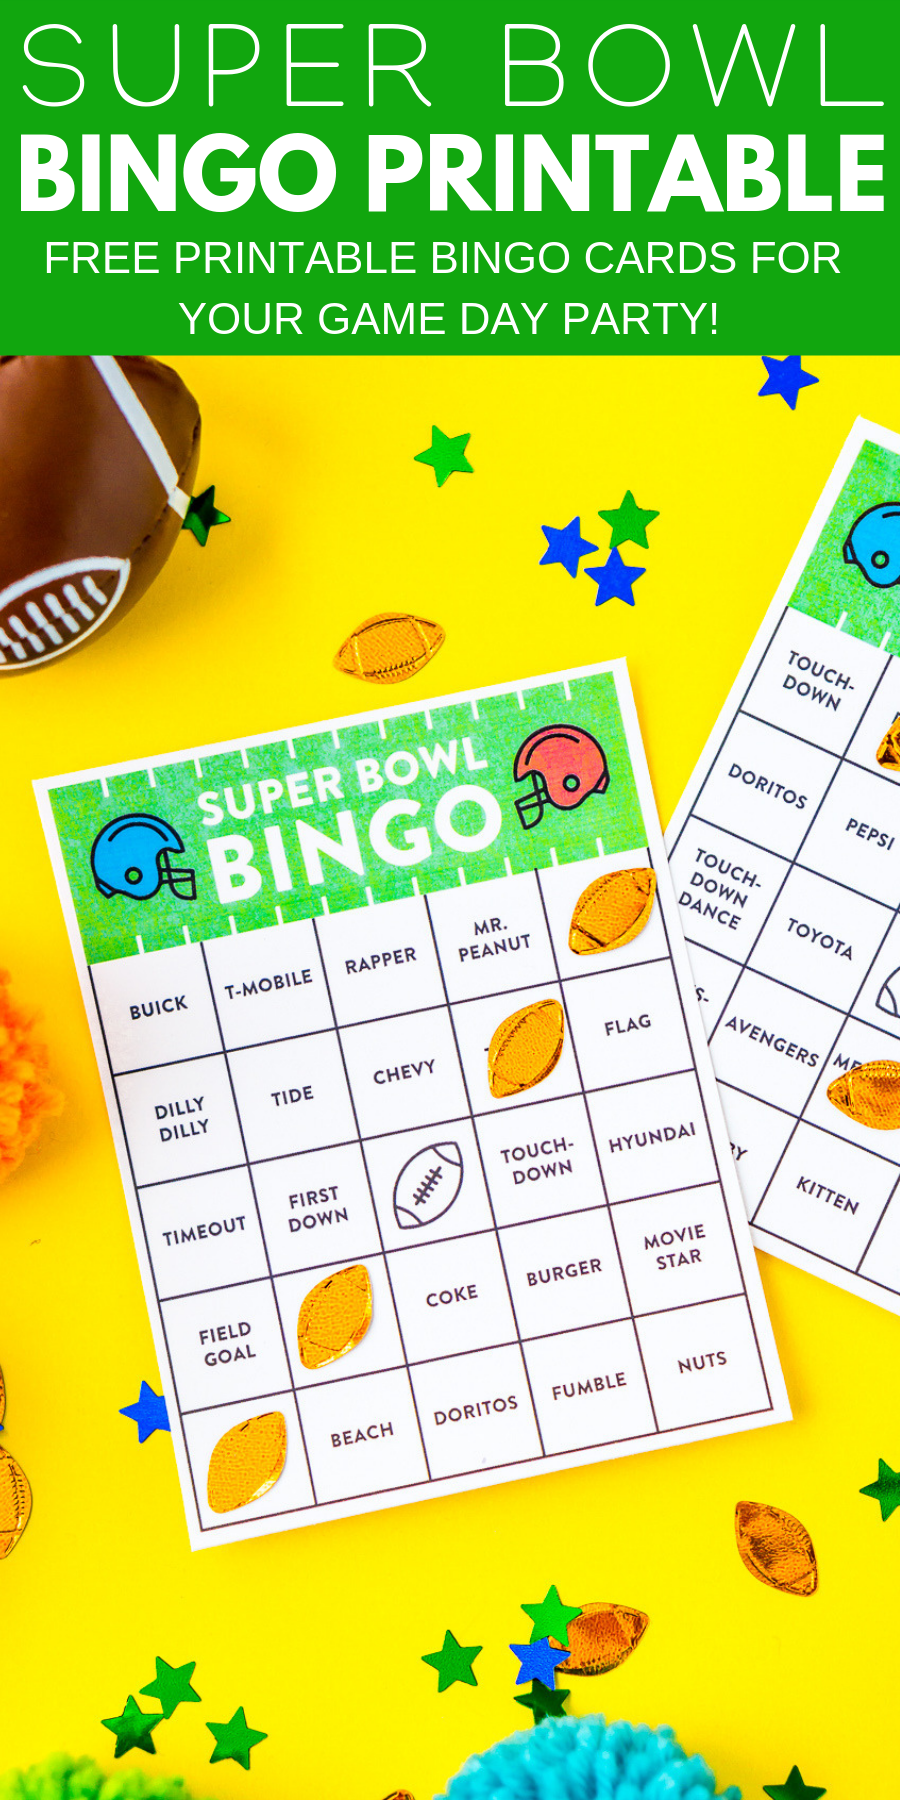 photograph relating to Printable Super Bowl Bingo Cards identify Tremendous Bowl Bingo Playing cards No cost Printable Sugar Soul